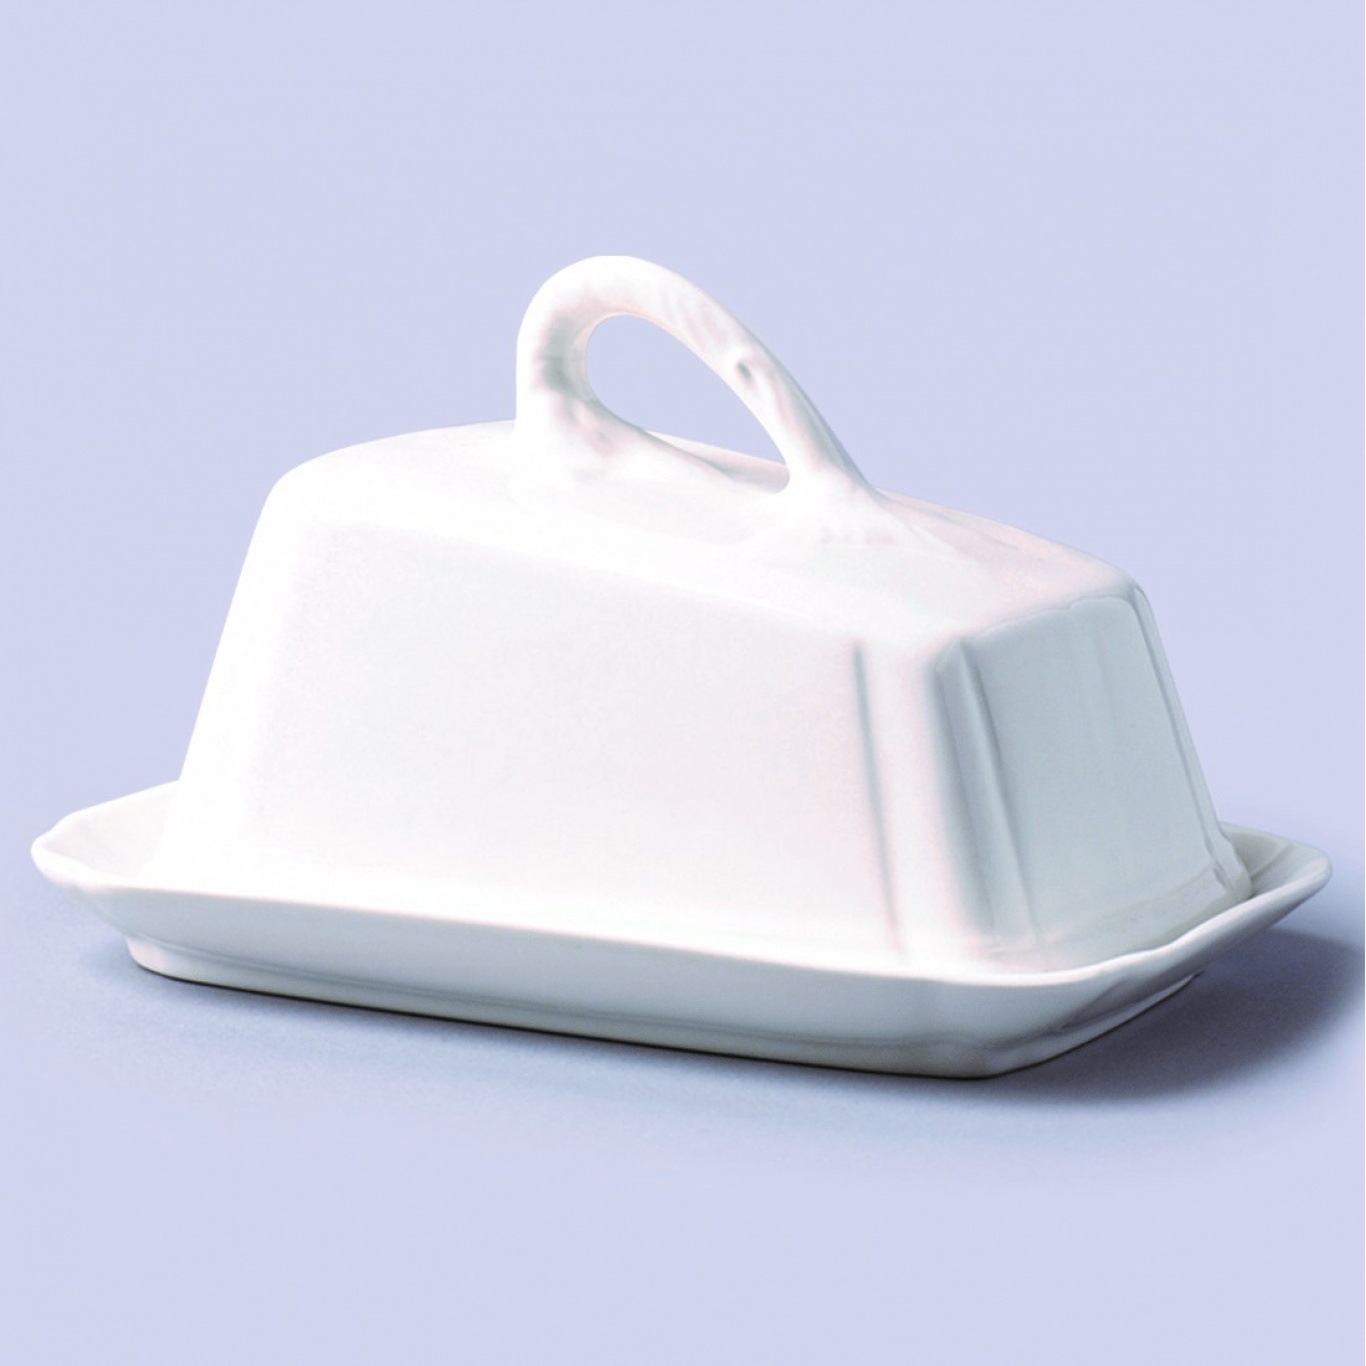 Image of Cheese Dish with Lid